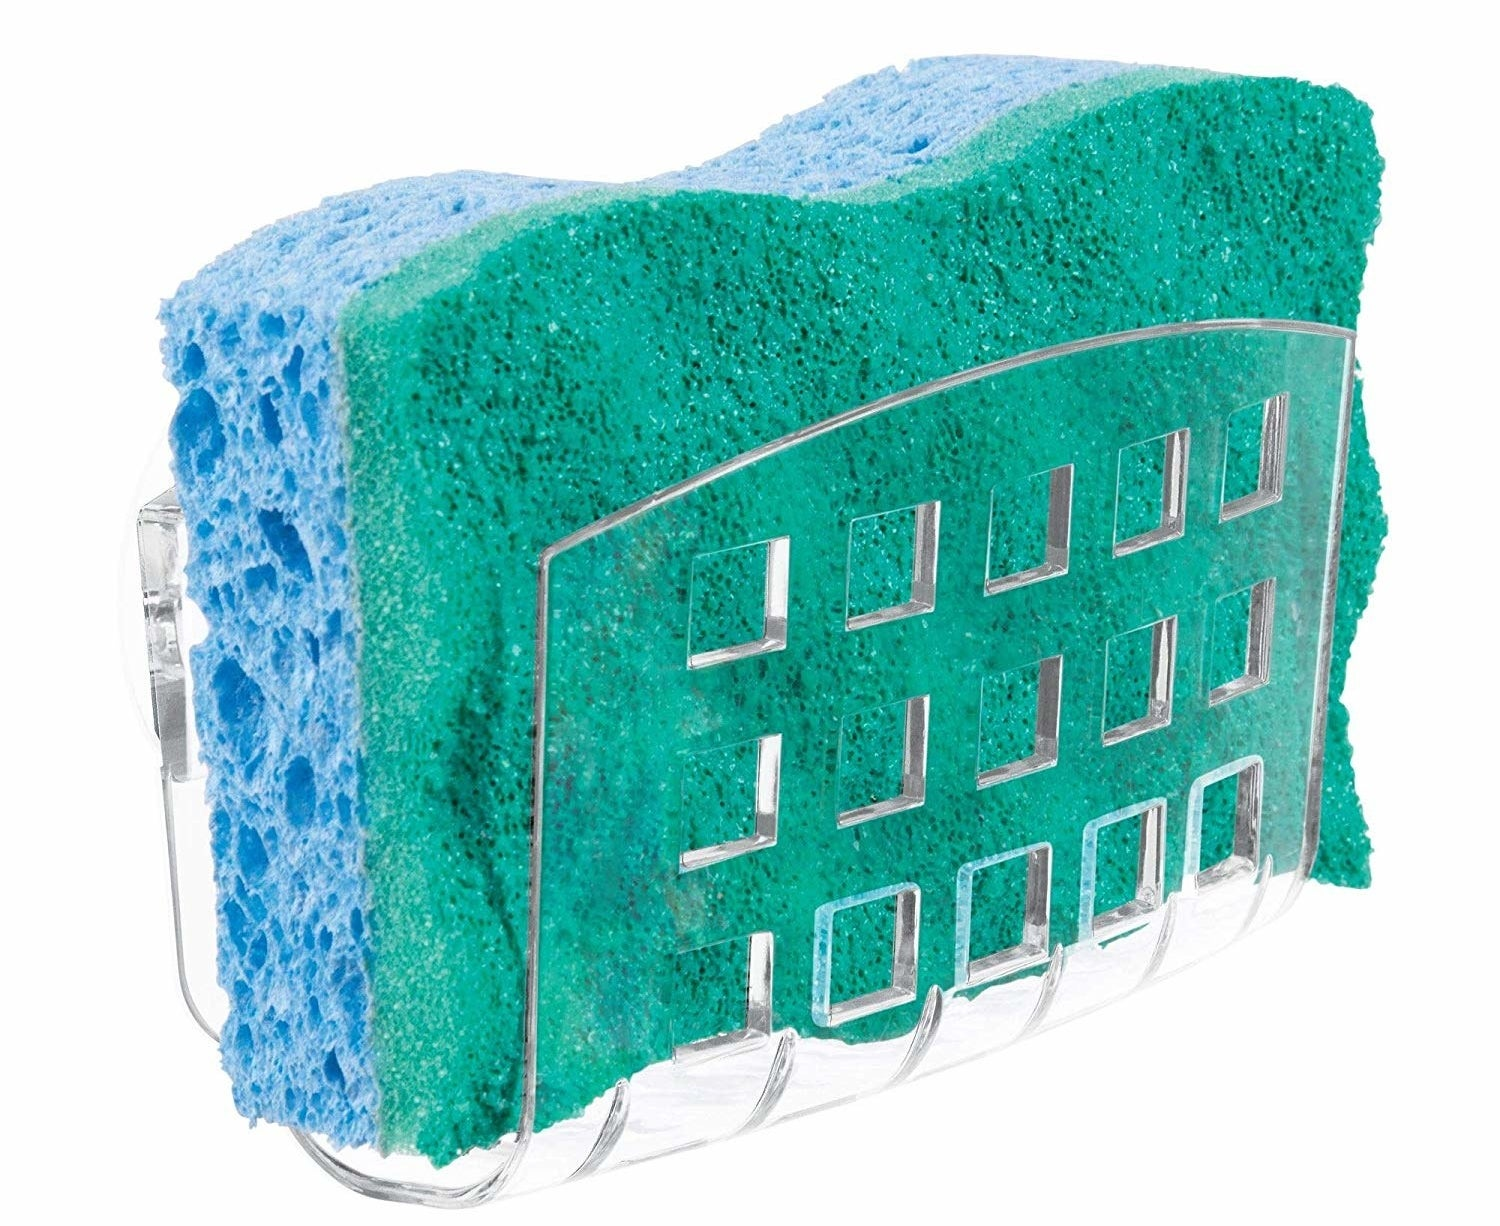 A sponge in the clear holder with square holes